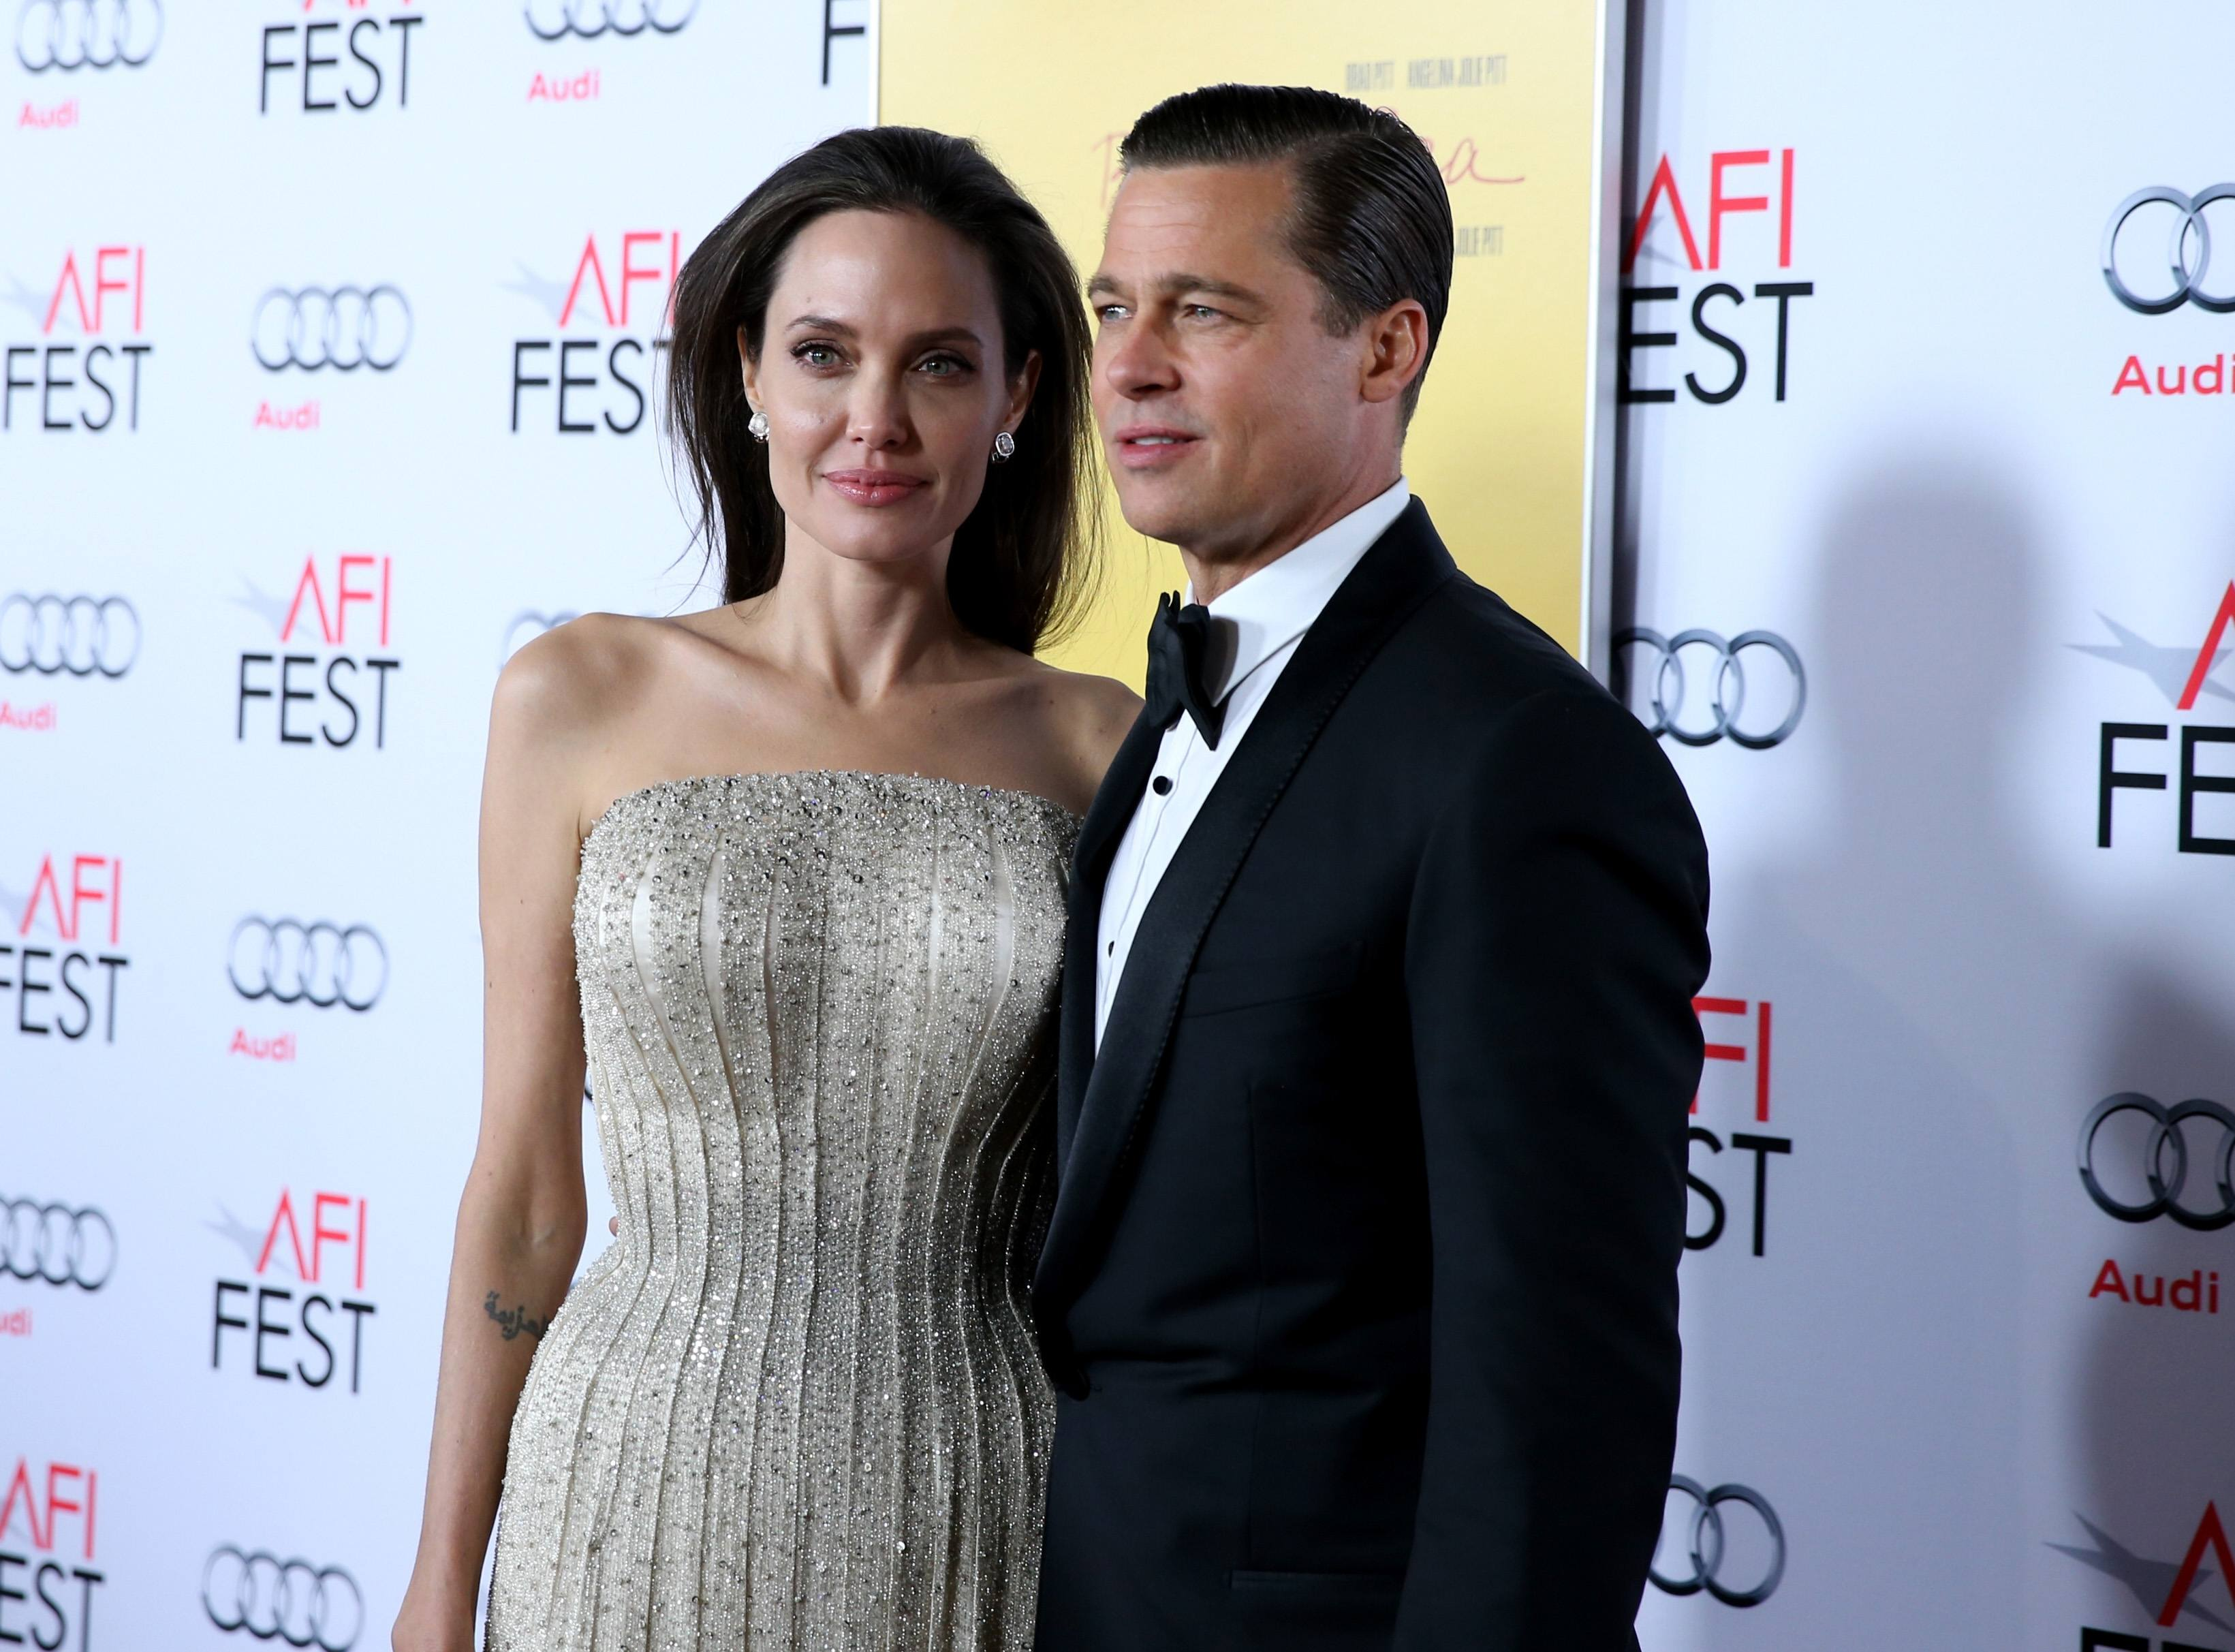 actor-producer Brad Pitt attend Audi at the opening night gala premiere of 'By the Sea'